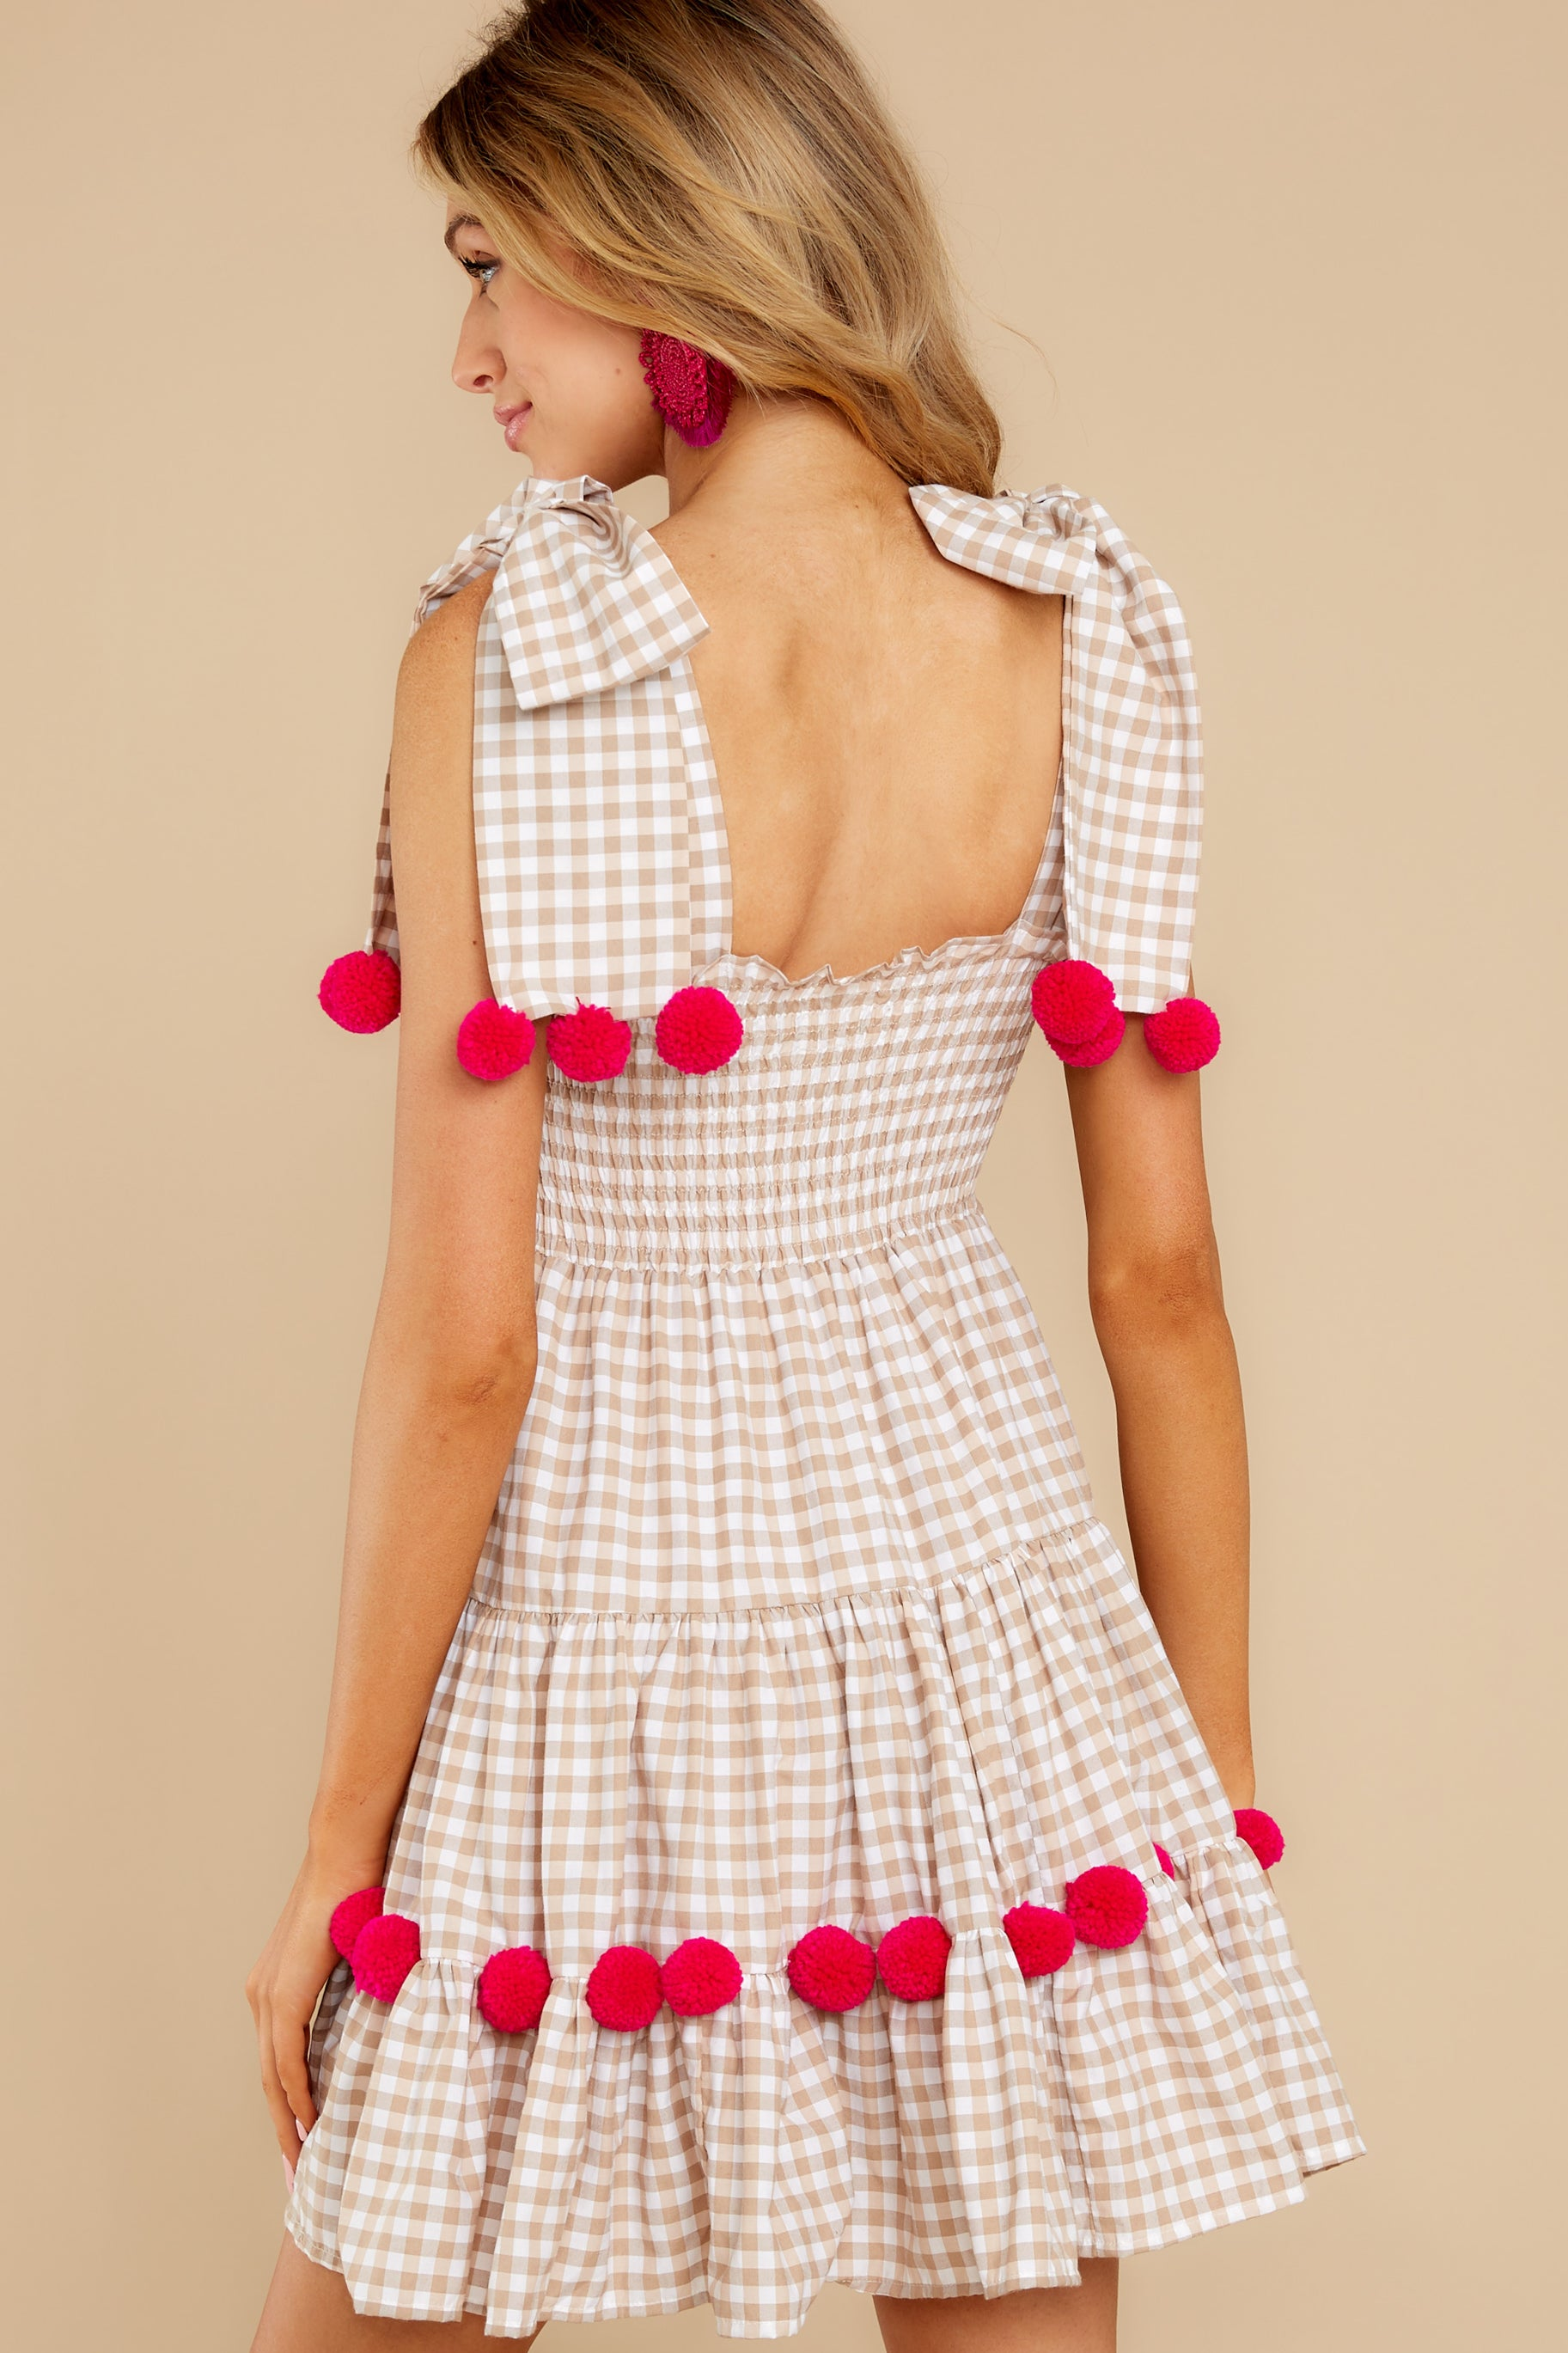 7 Pippa Beige Gingham Pom Pom Dress at reddress.com